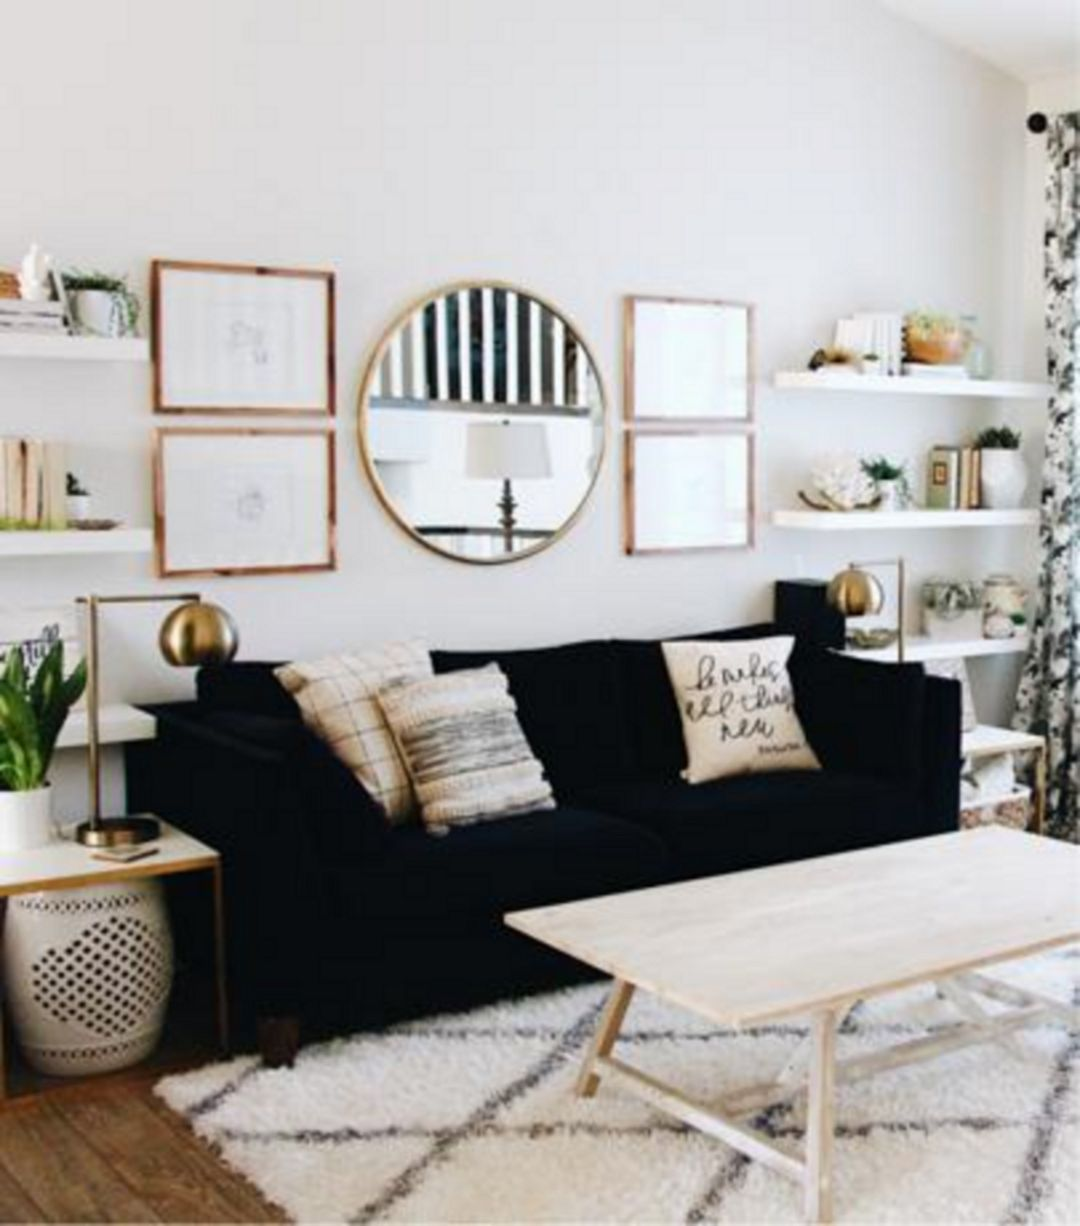 67+ Awesome Apartment Living Room Decorating Ideas On A Budget ...